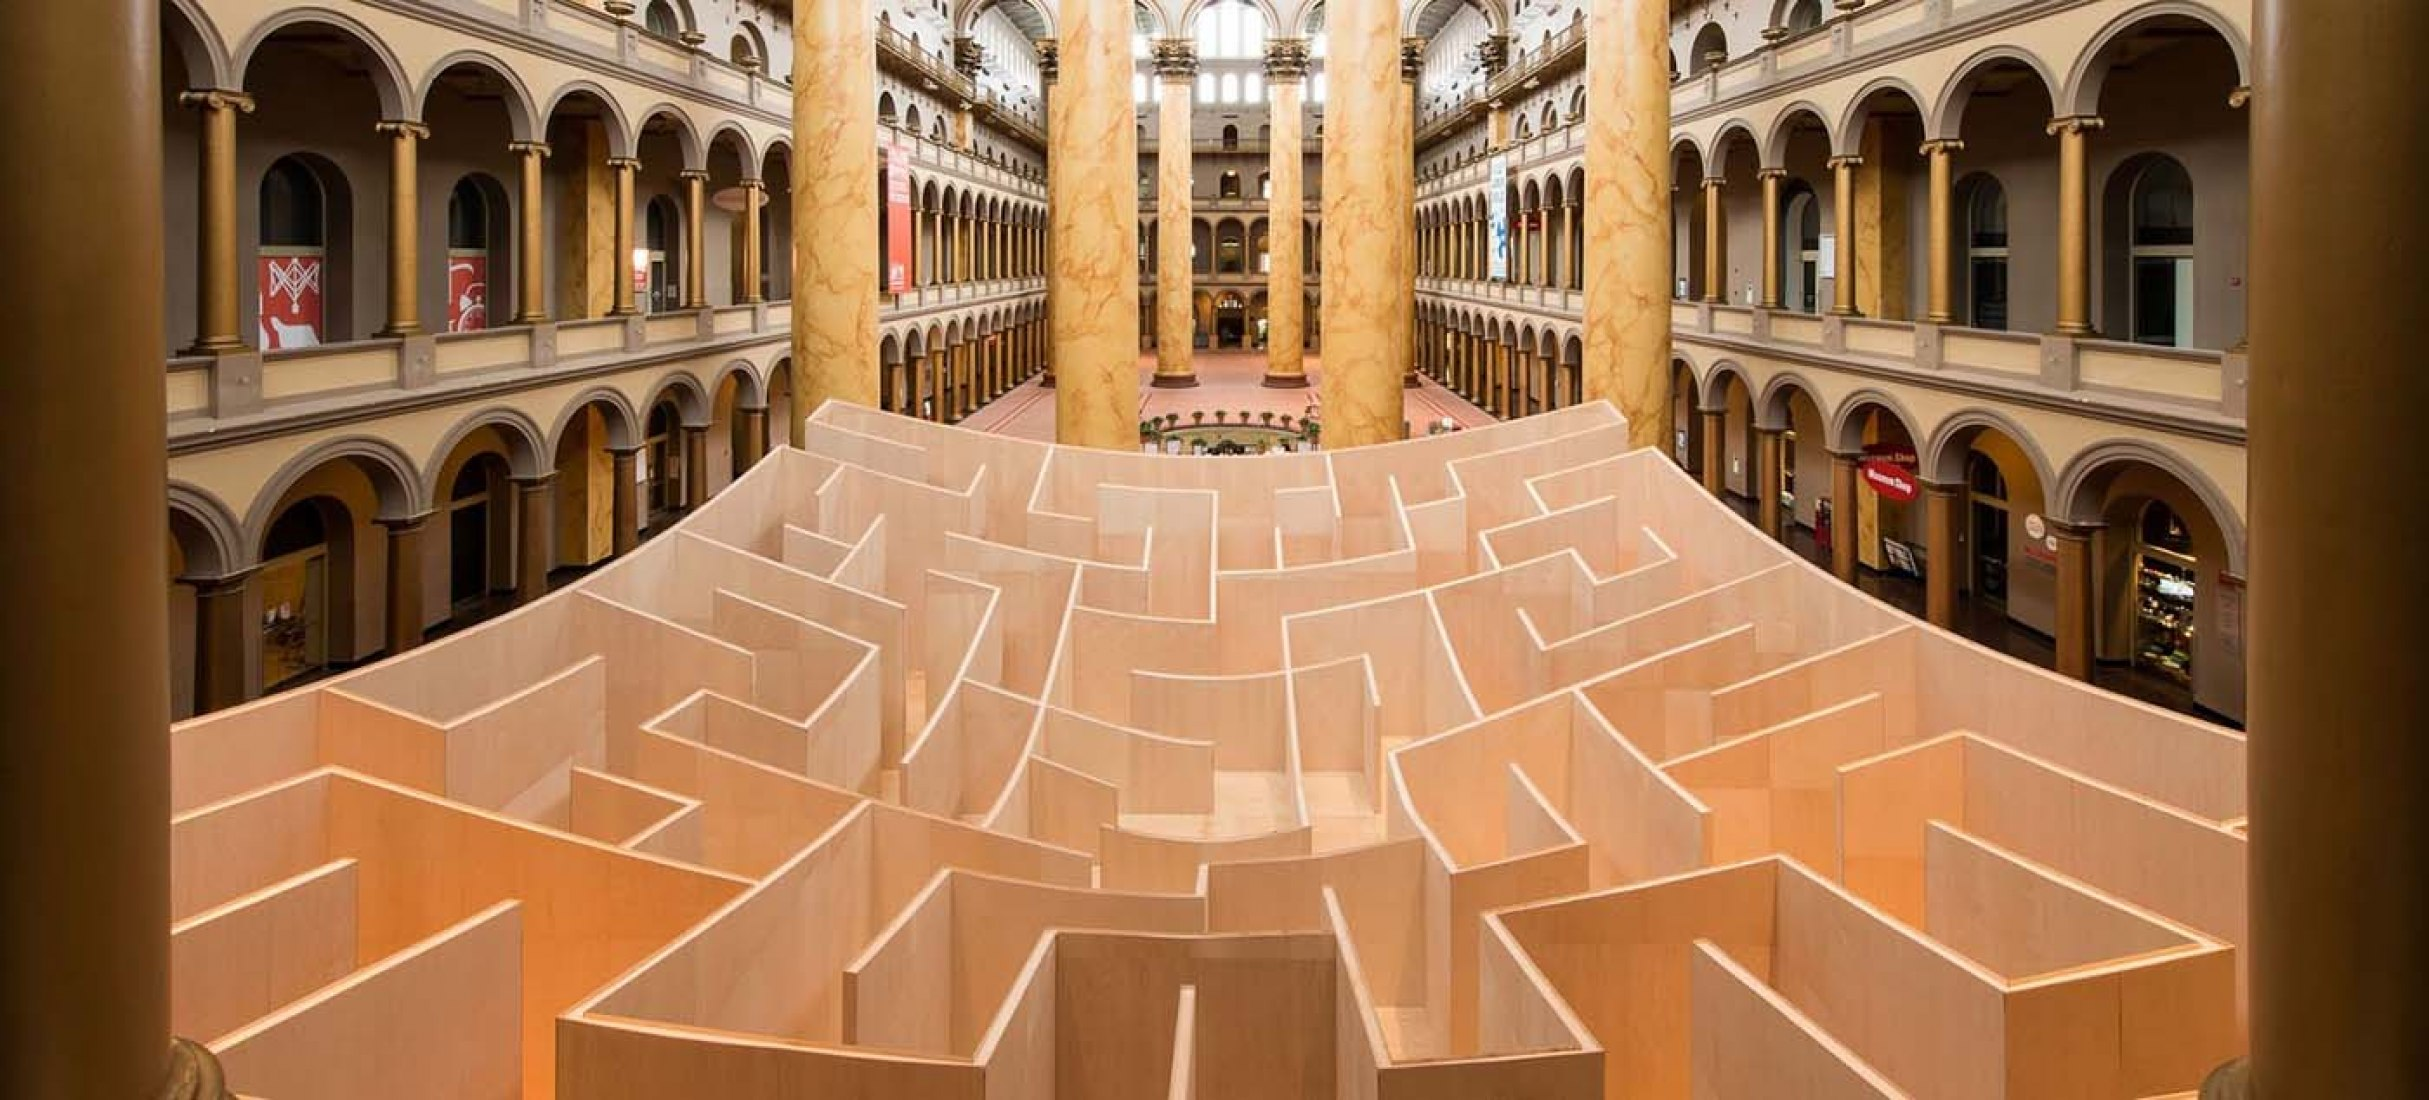 Big Maze at National Building Museum by BIG.